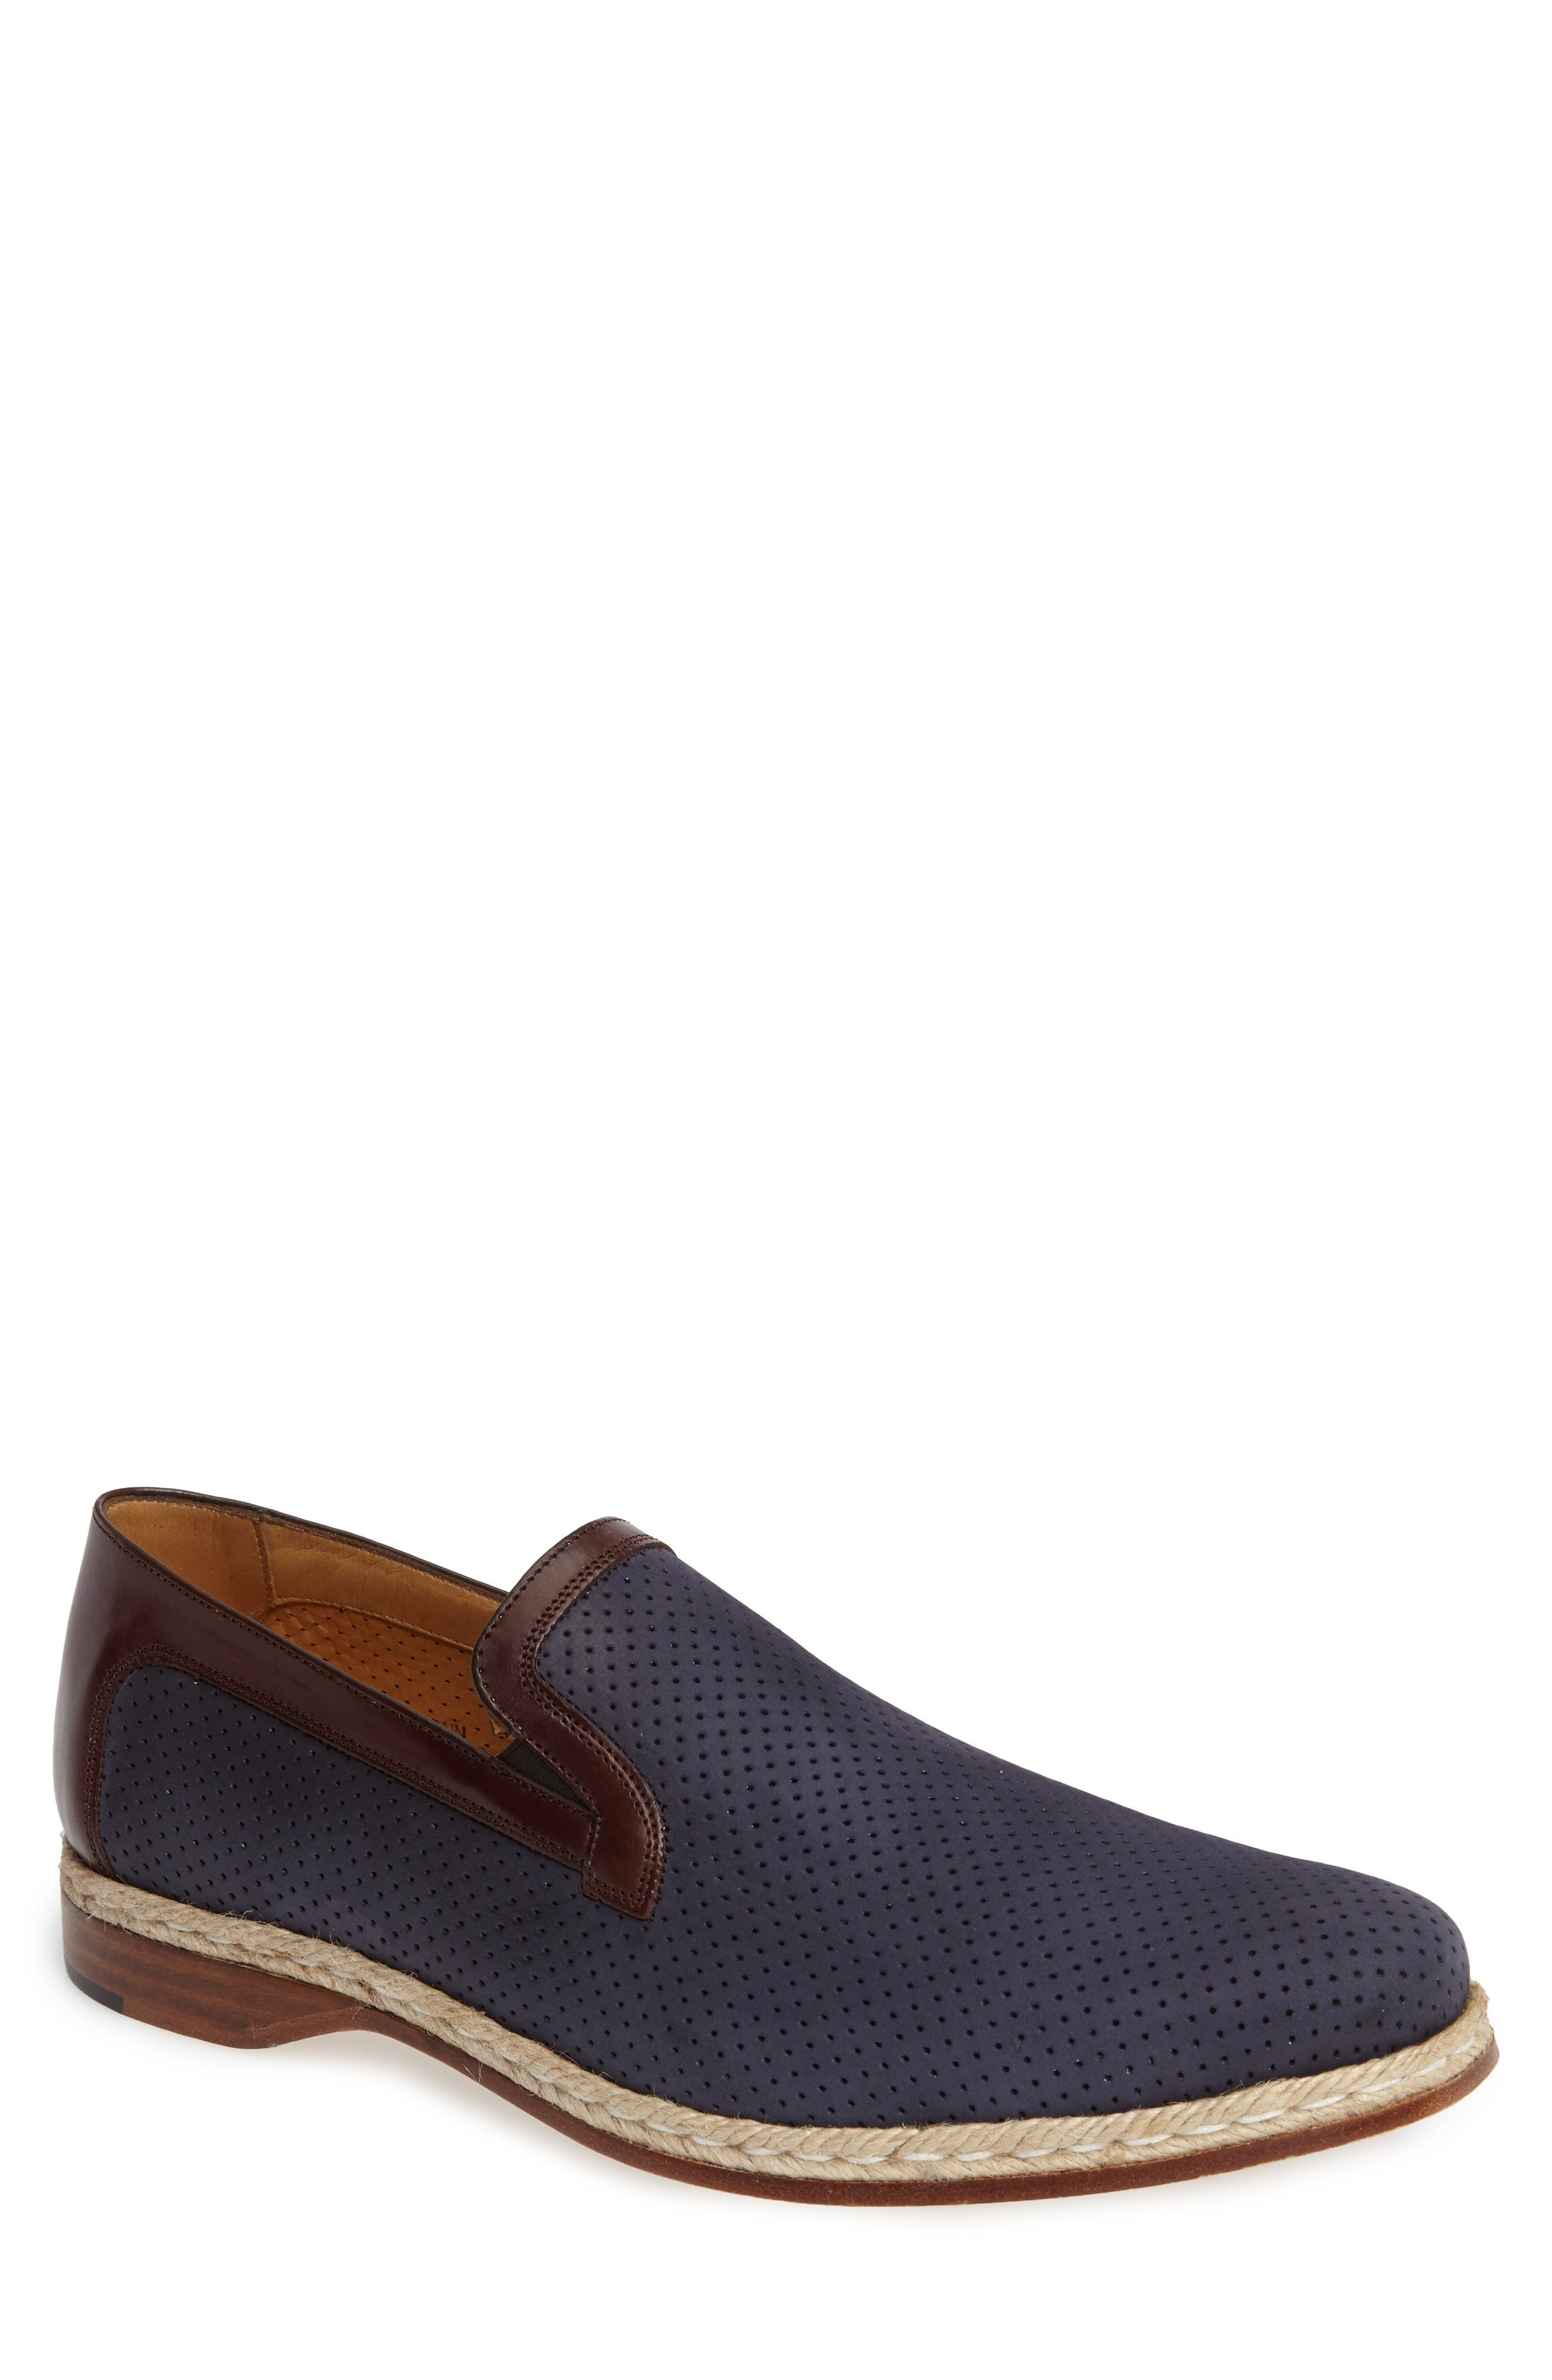 MEZLAN Marcet Perforated Loafer